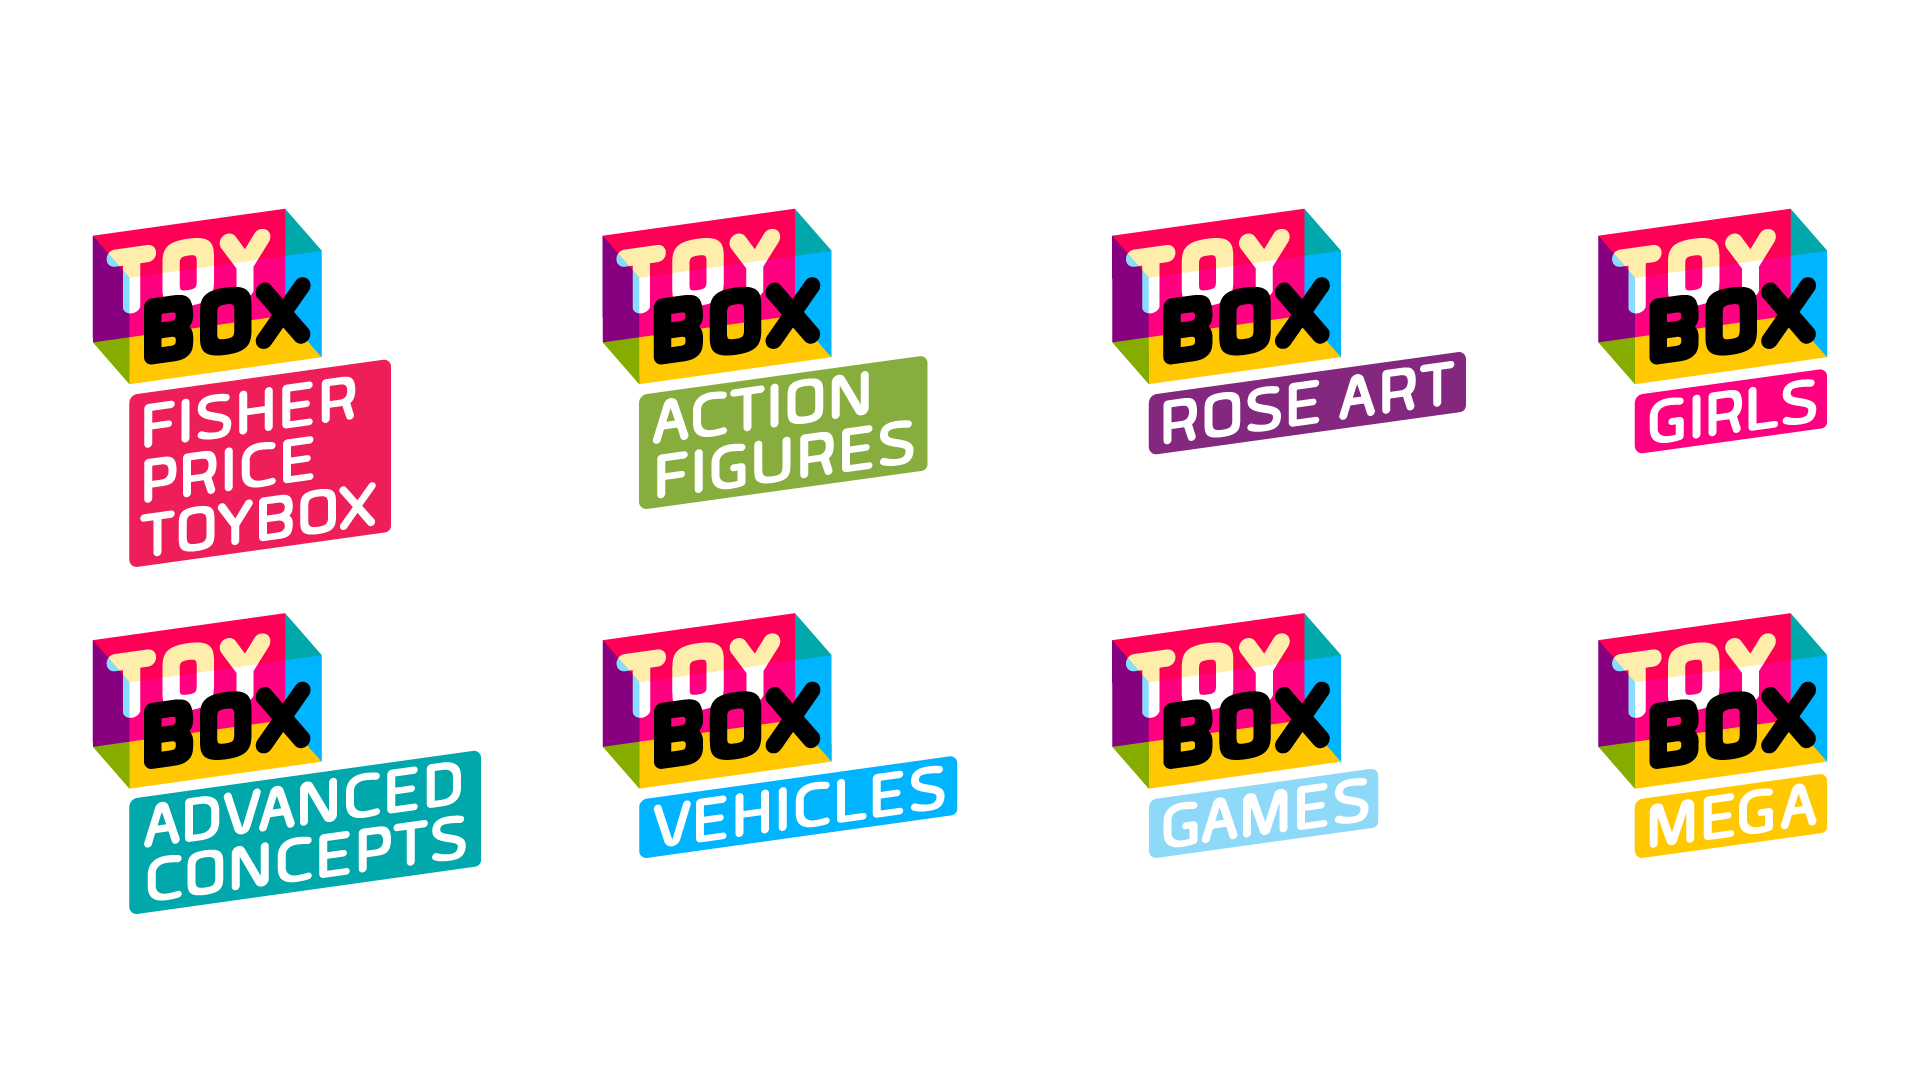 toybox_branding_04.png